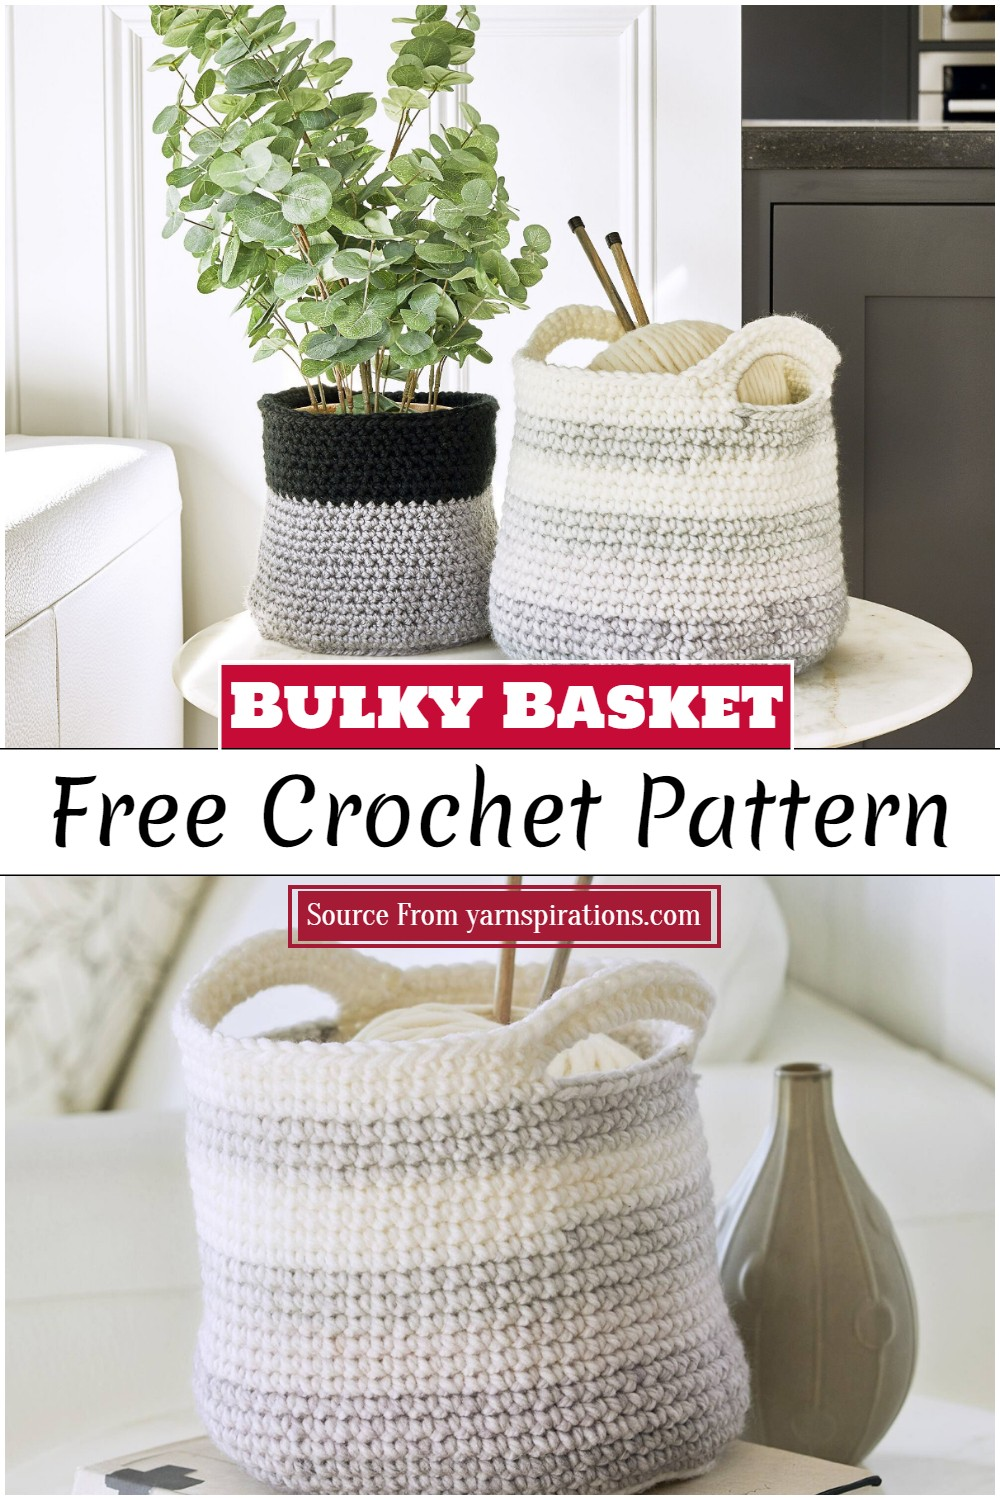 Crochet Bulky Basket Pattern